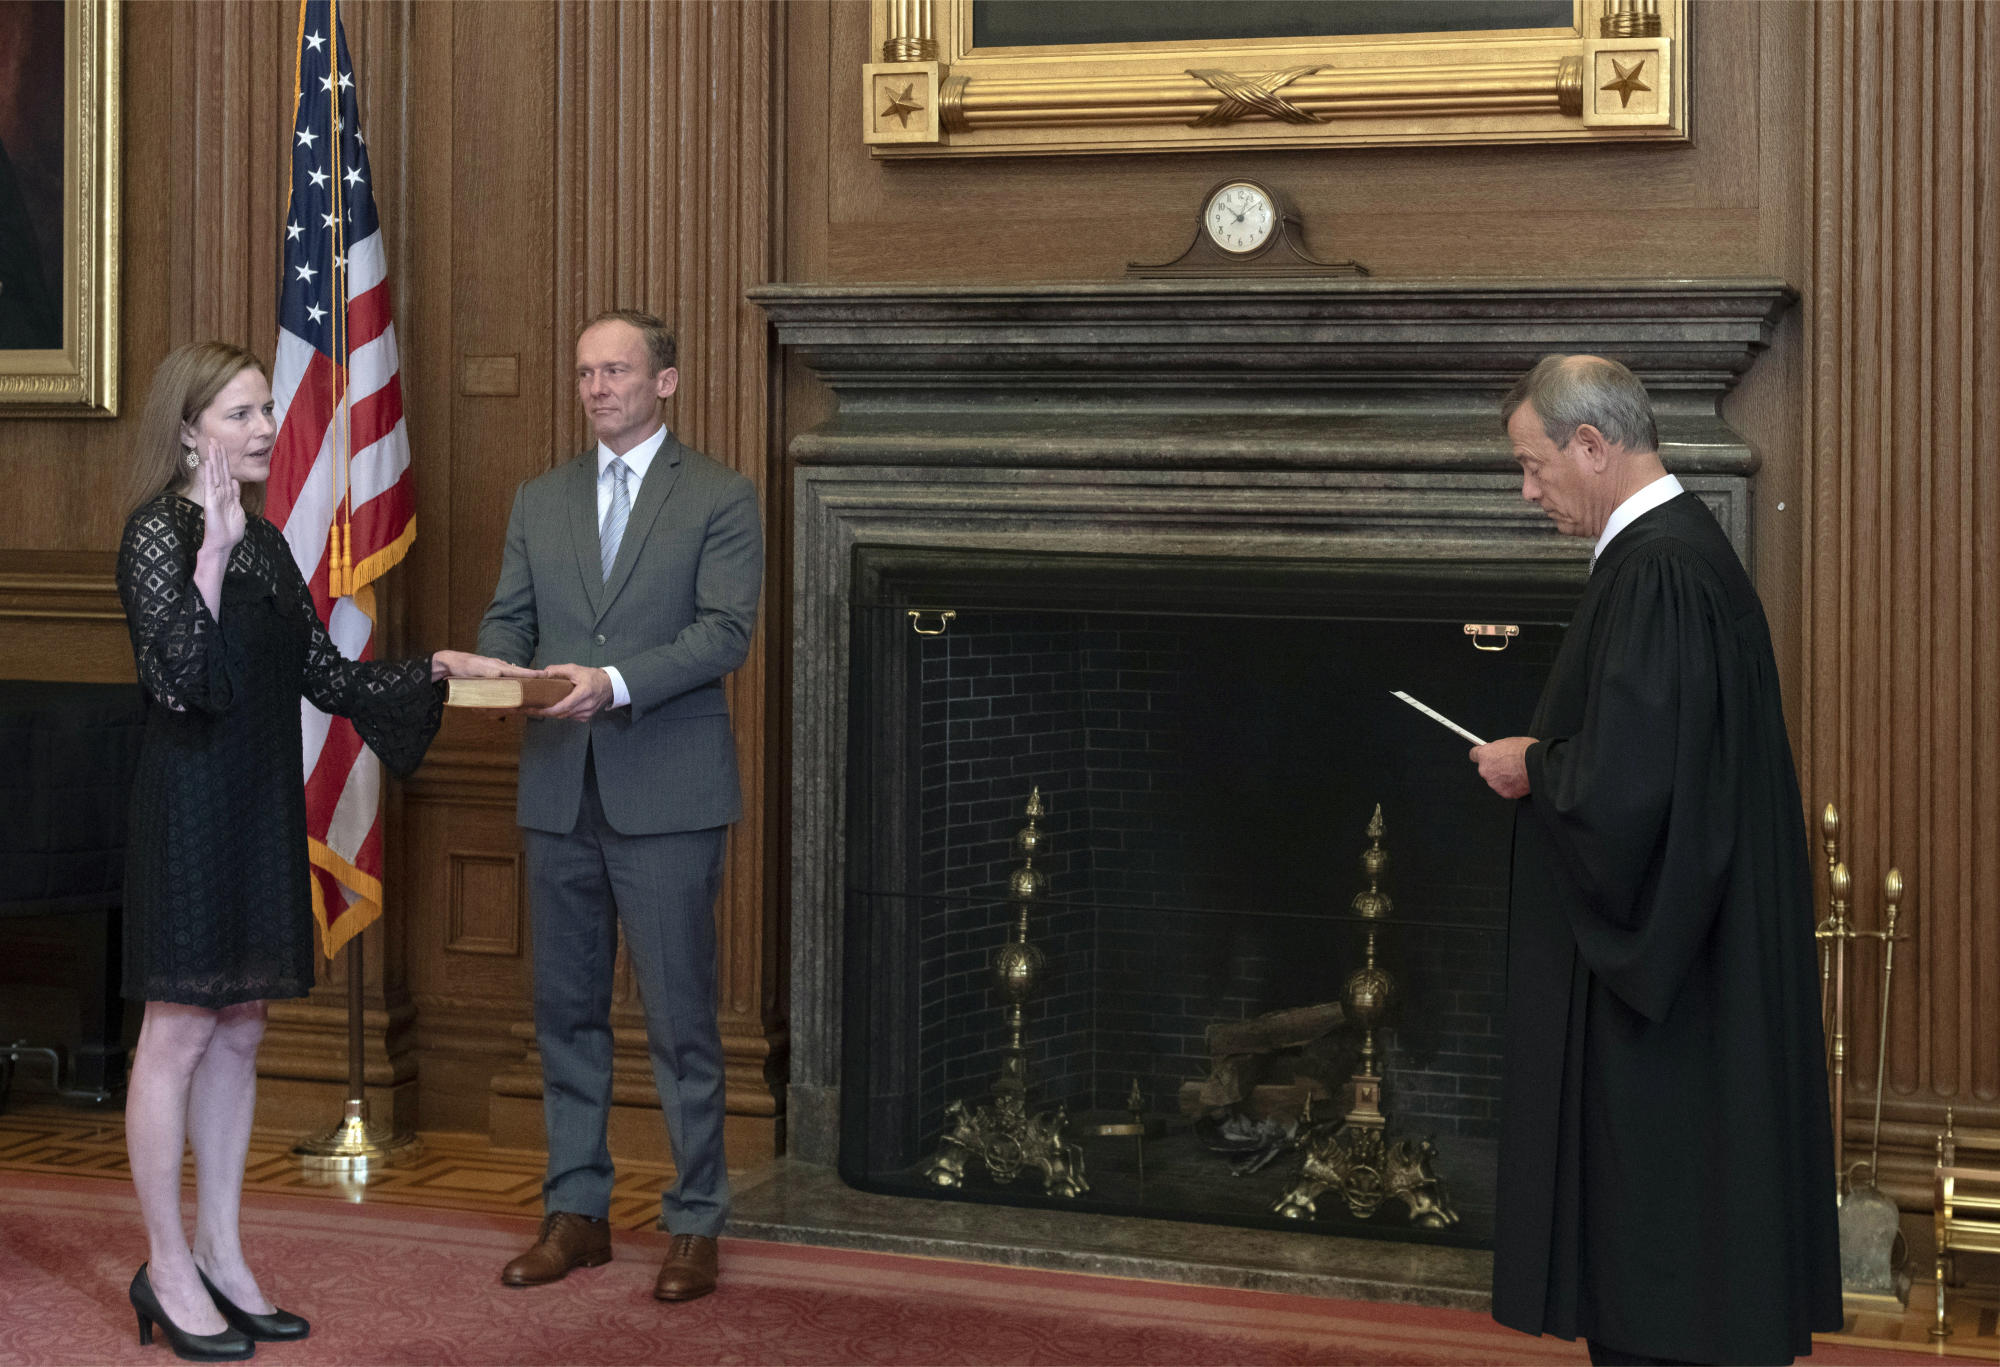 Barrett to join Supreme Court arguments for the first time